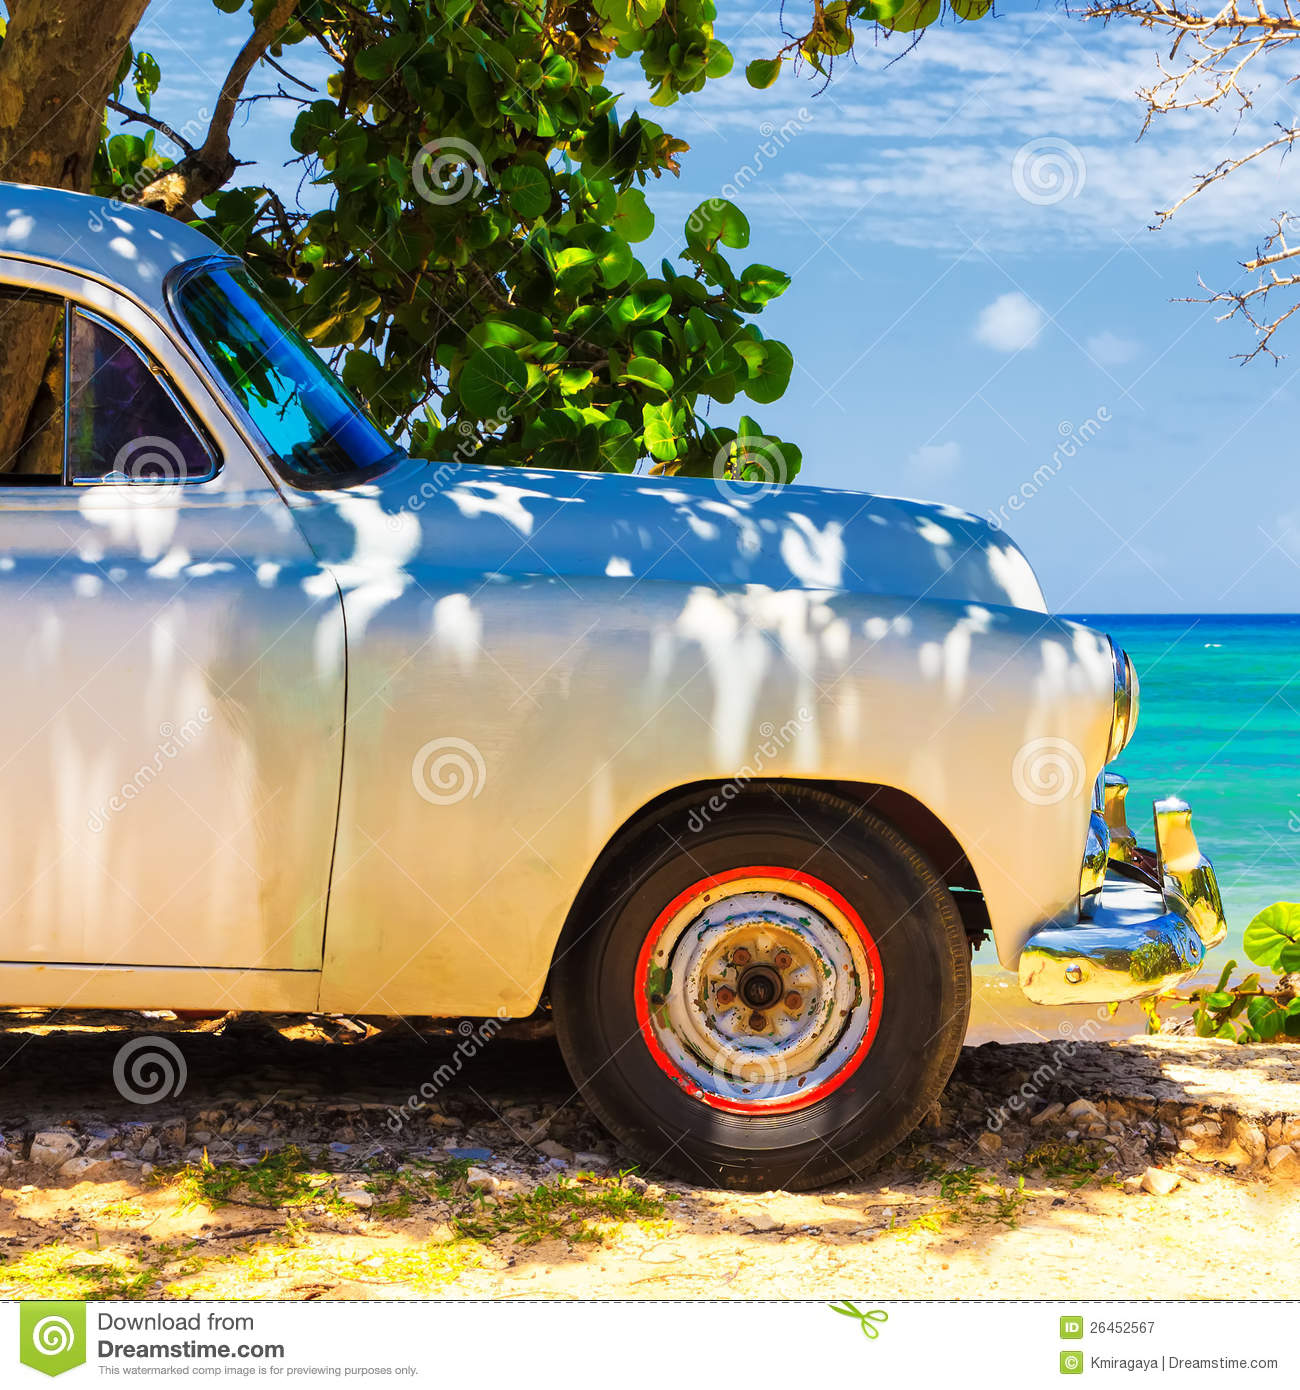 Vintage Car At A Beach In Cuba Royalty Free Stock Photography